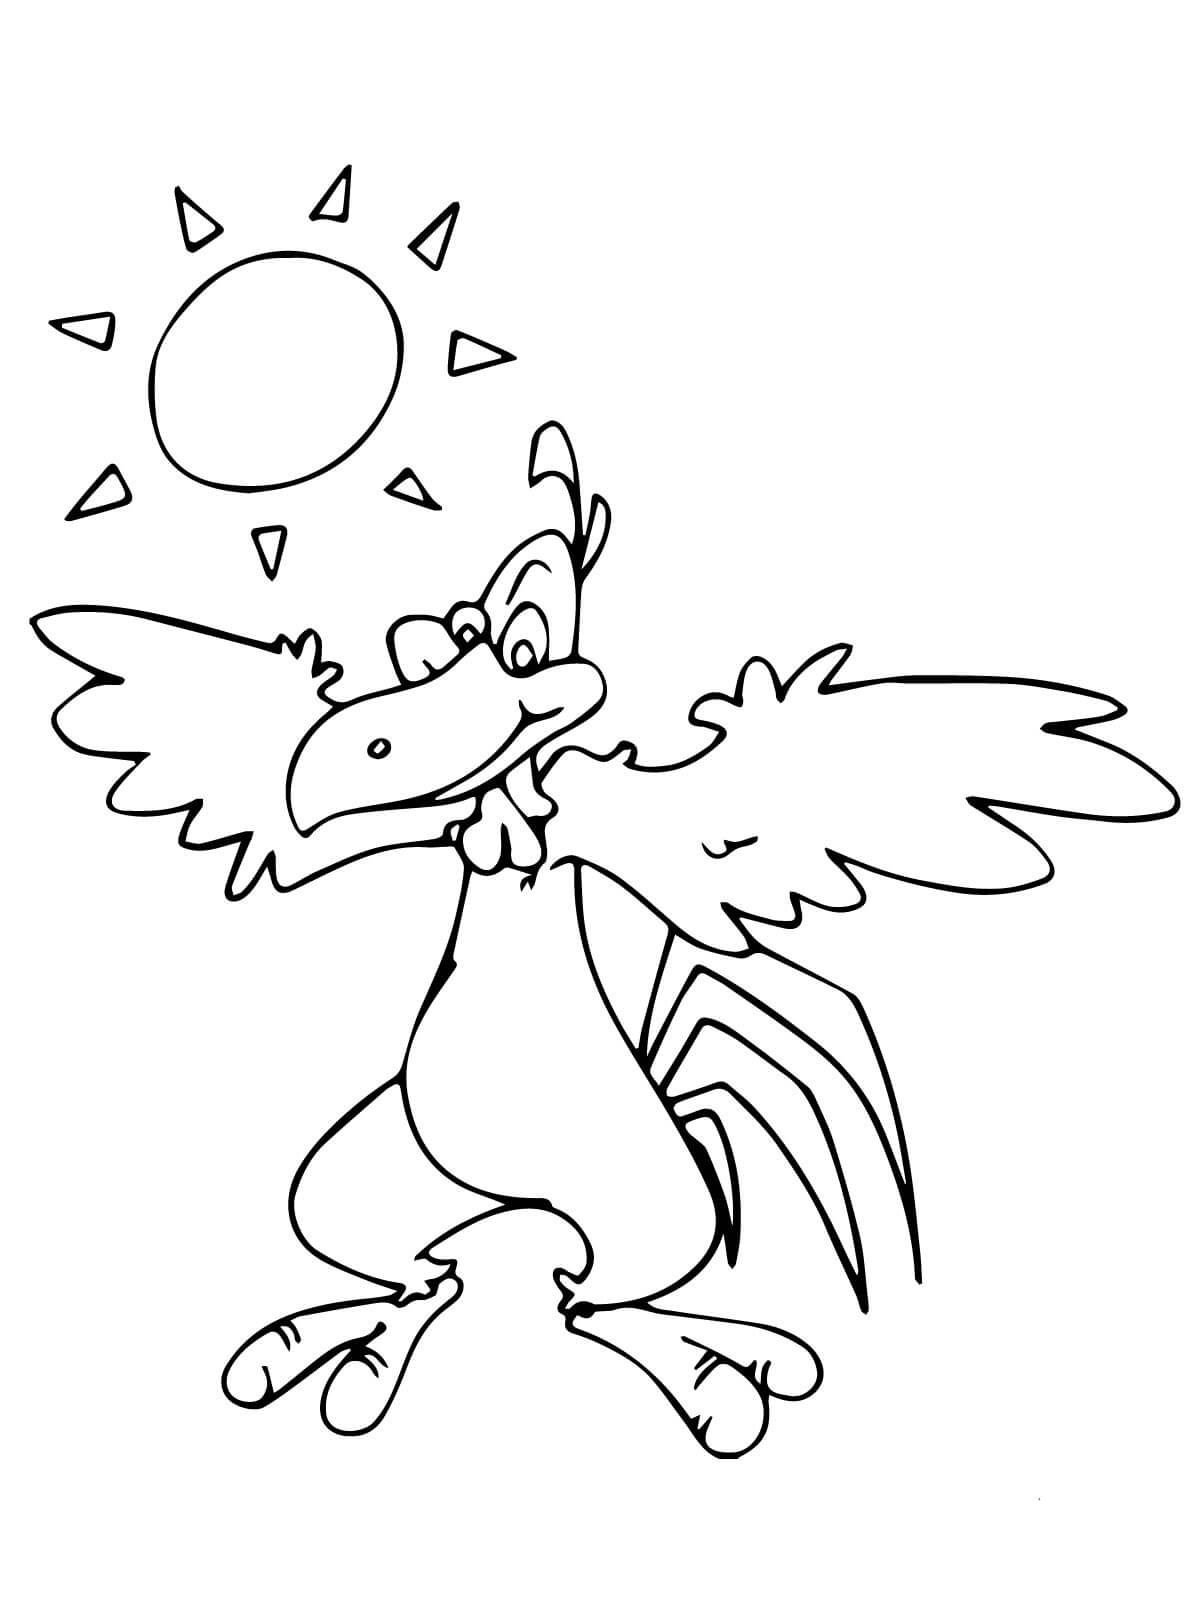 1200x1600 Condor Coloring Pages To Download And Print For Free